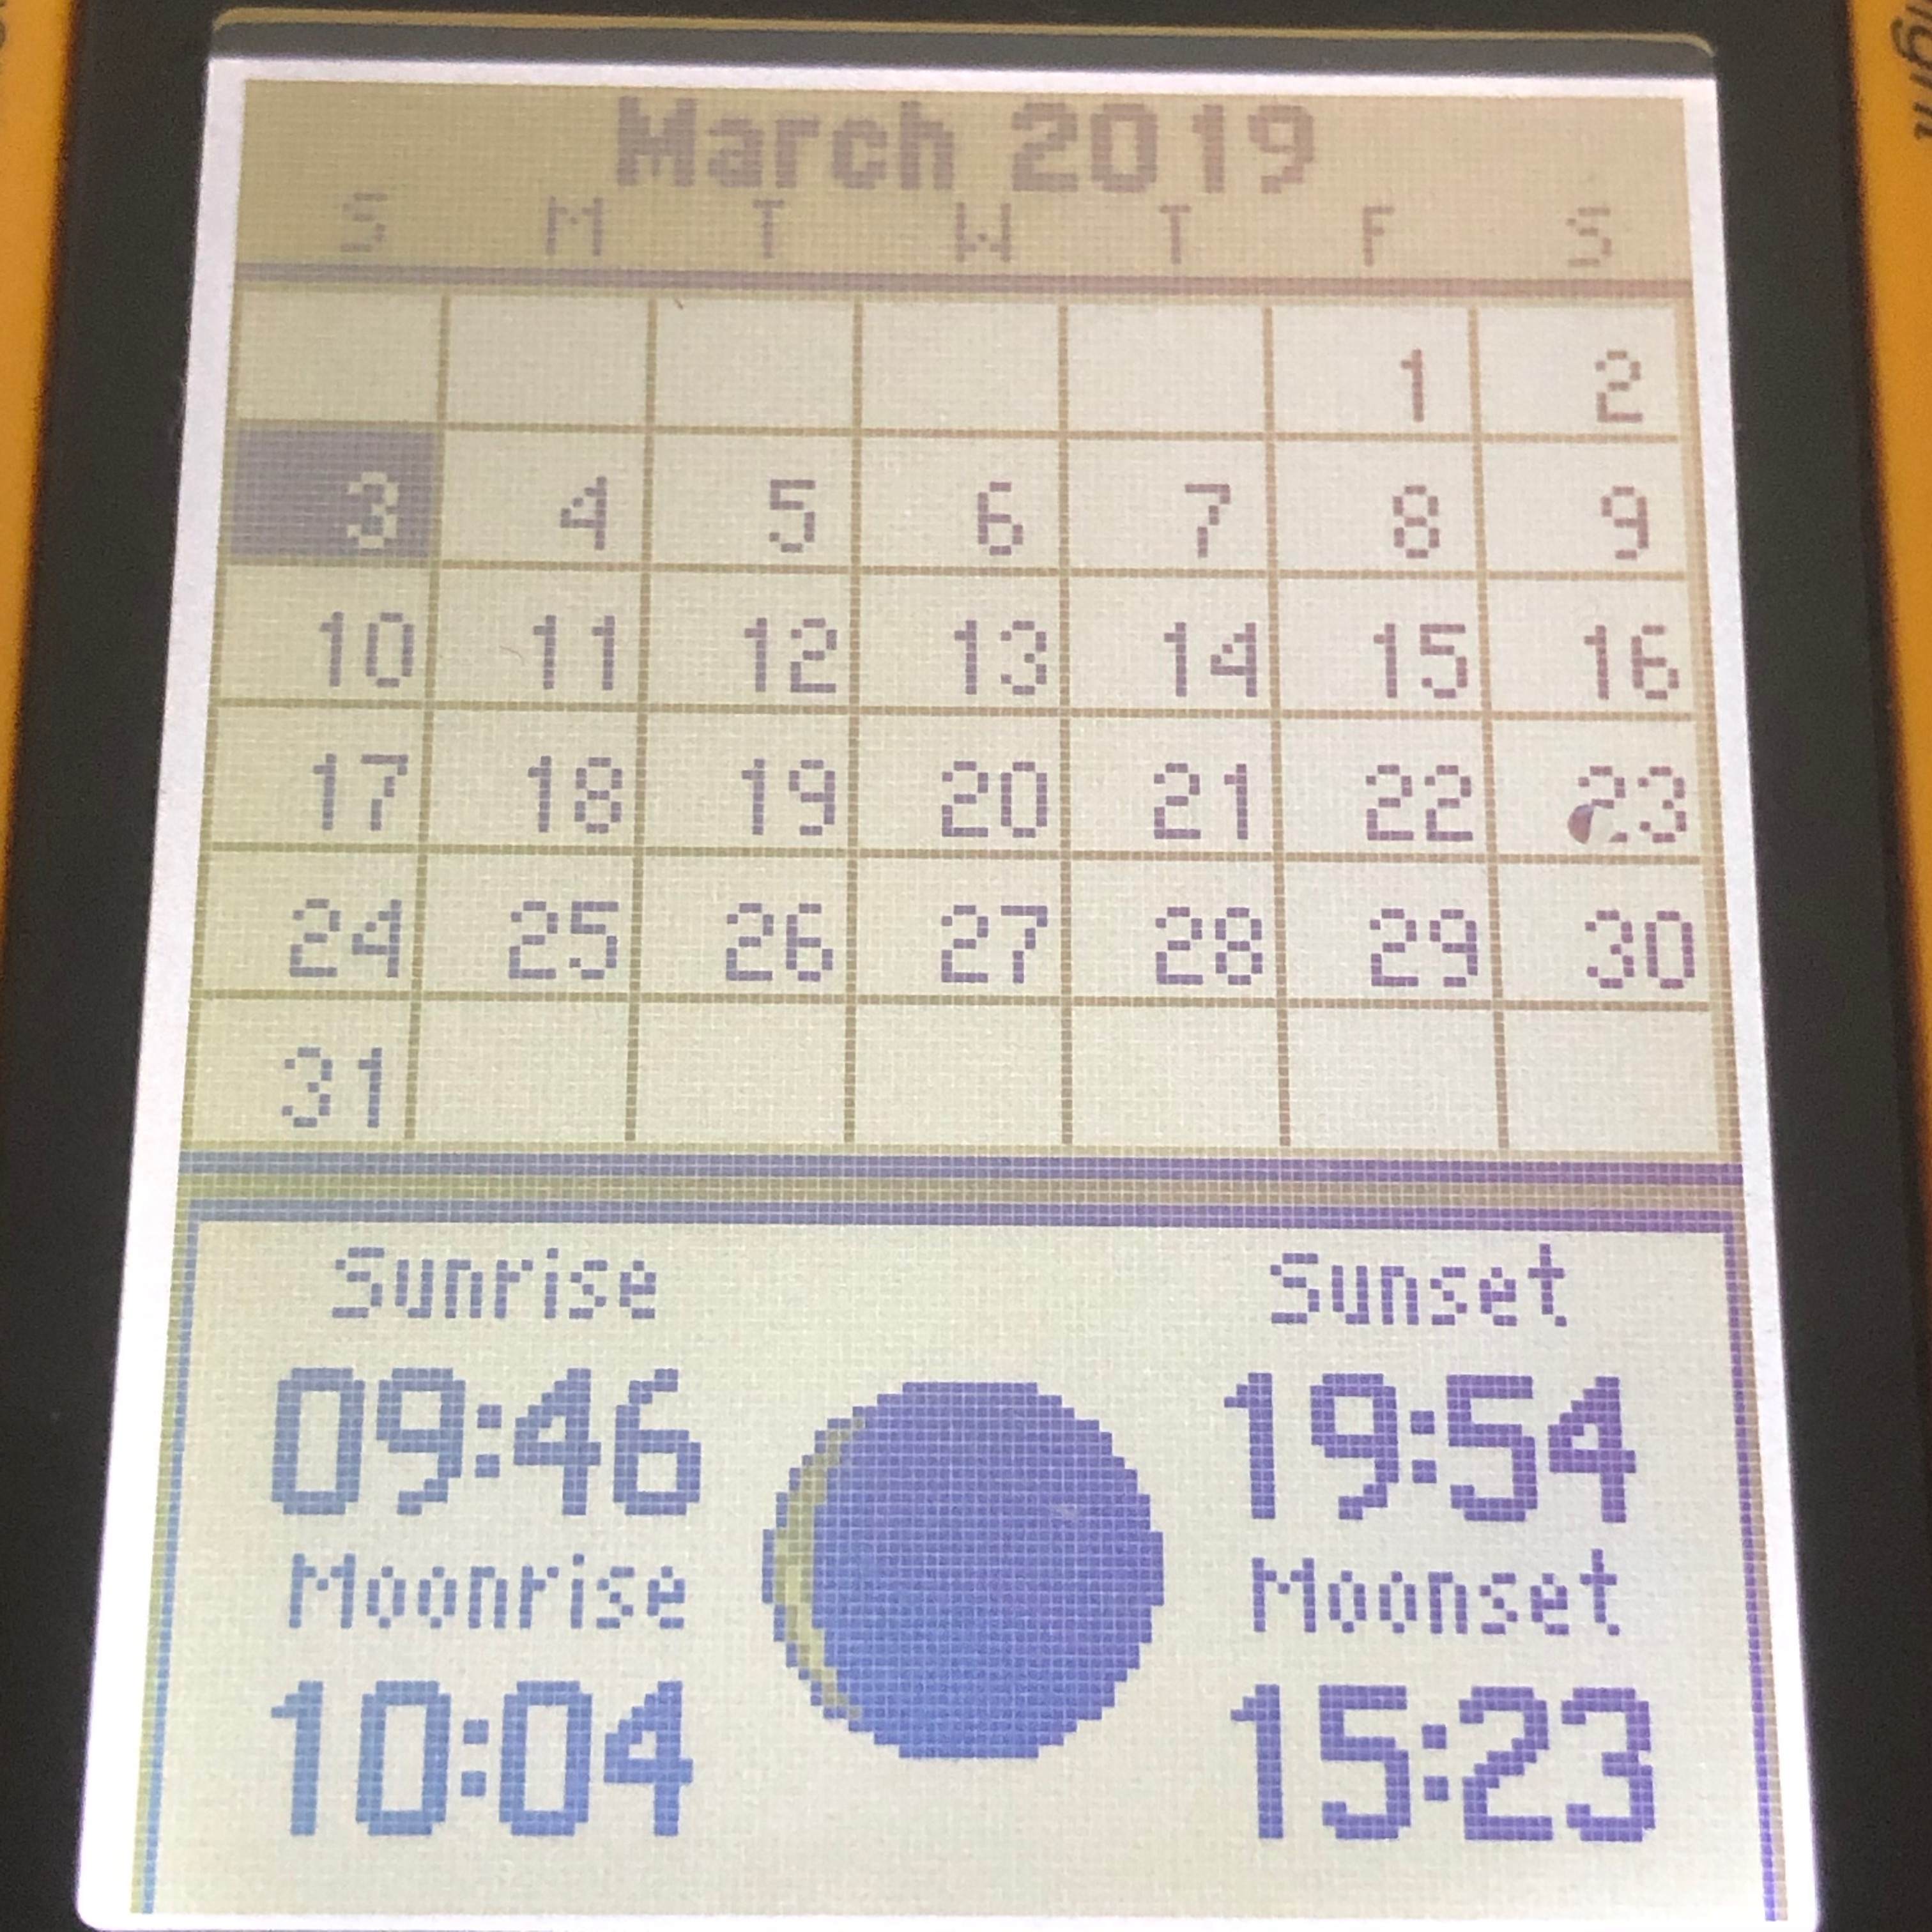 Sunrise and sunset function as seen on the eTrex 10